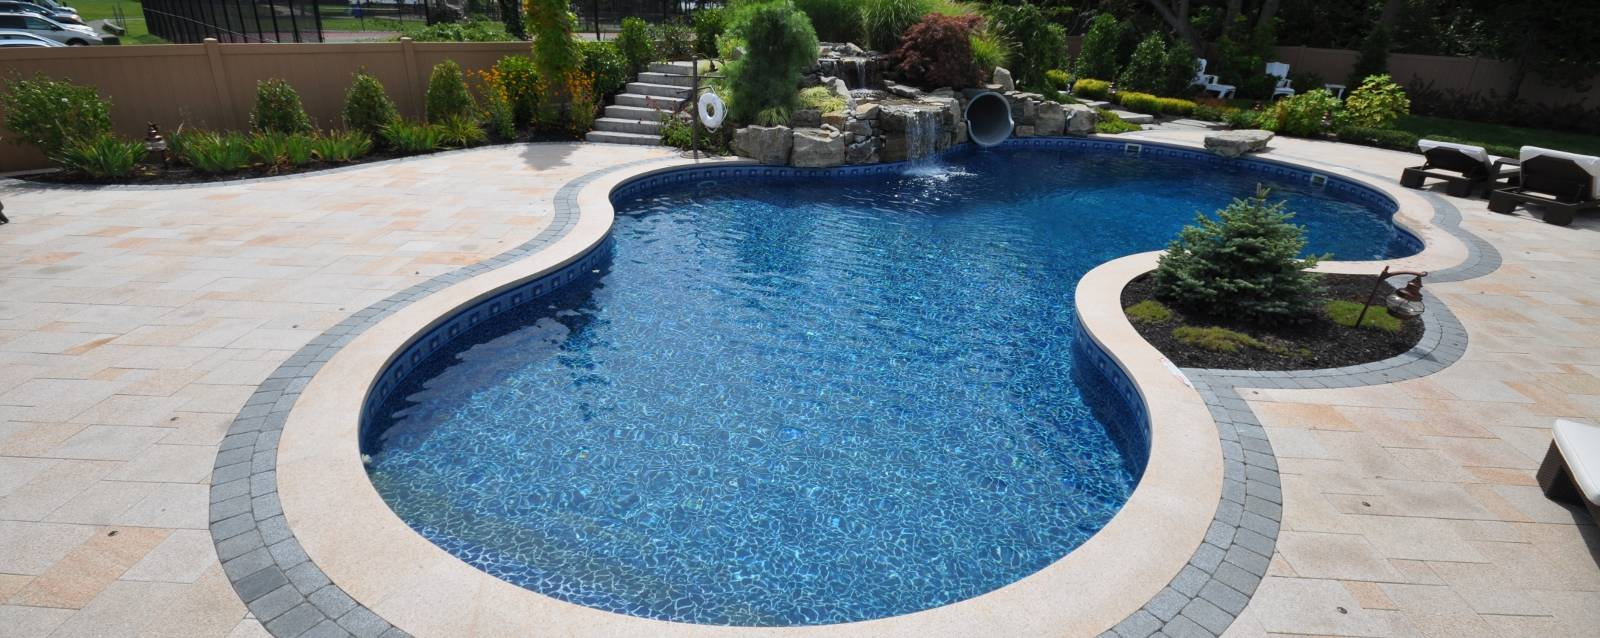 Inground swimming pool landscaping interior design ideas for Inground swimming pool designs